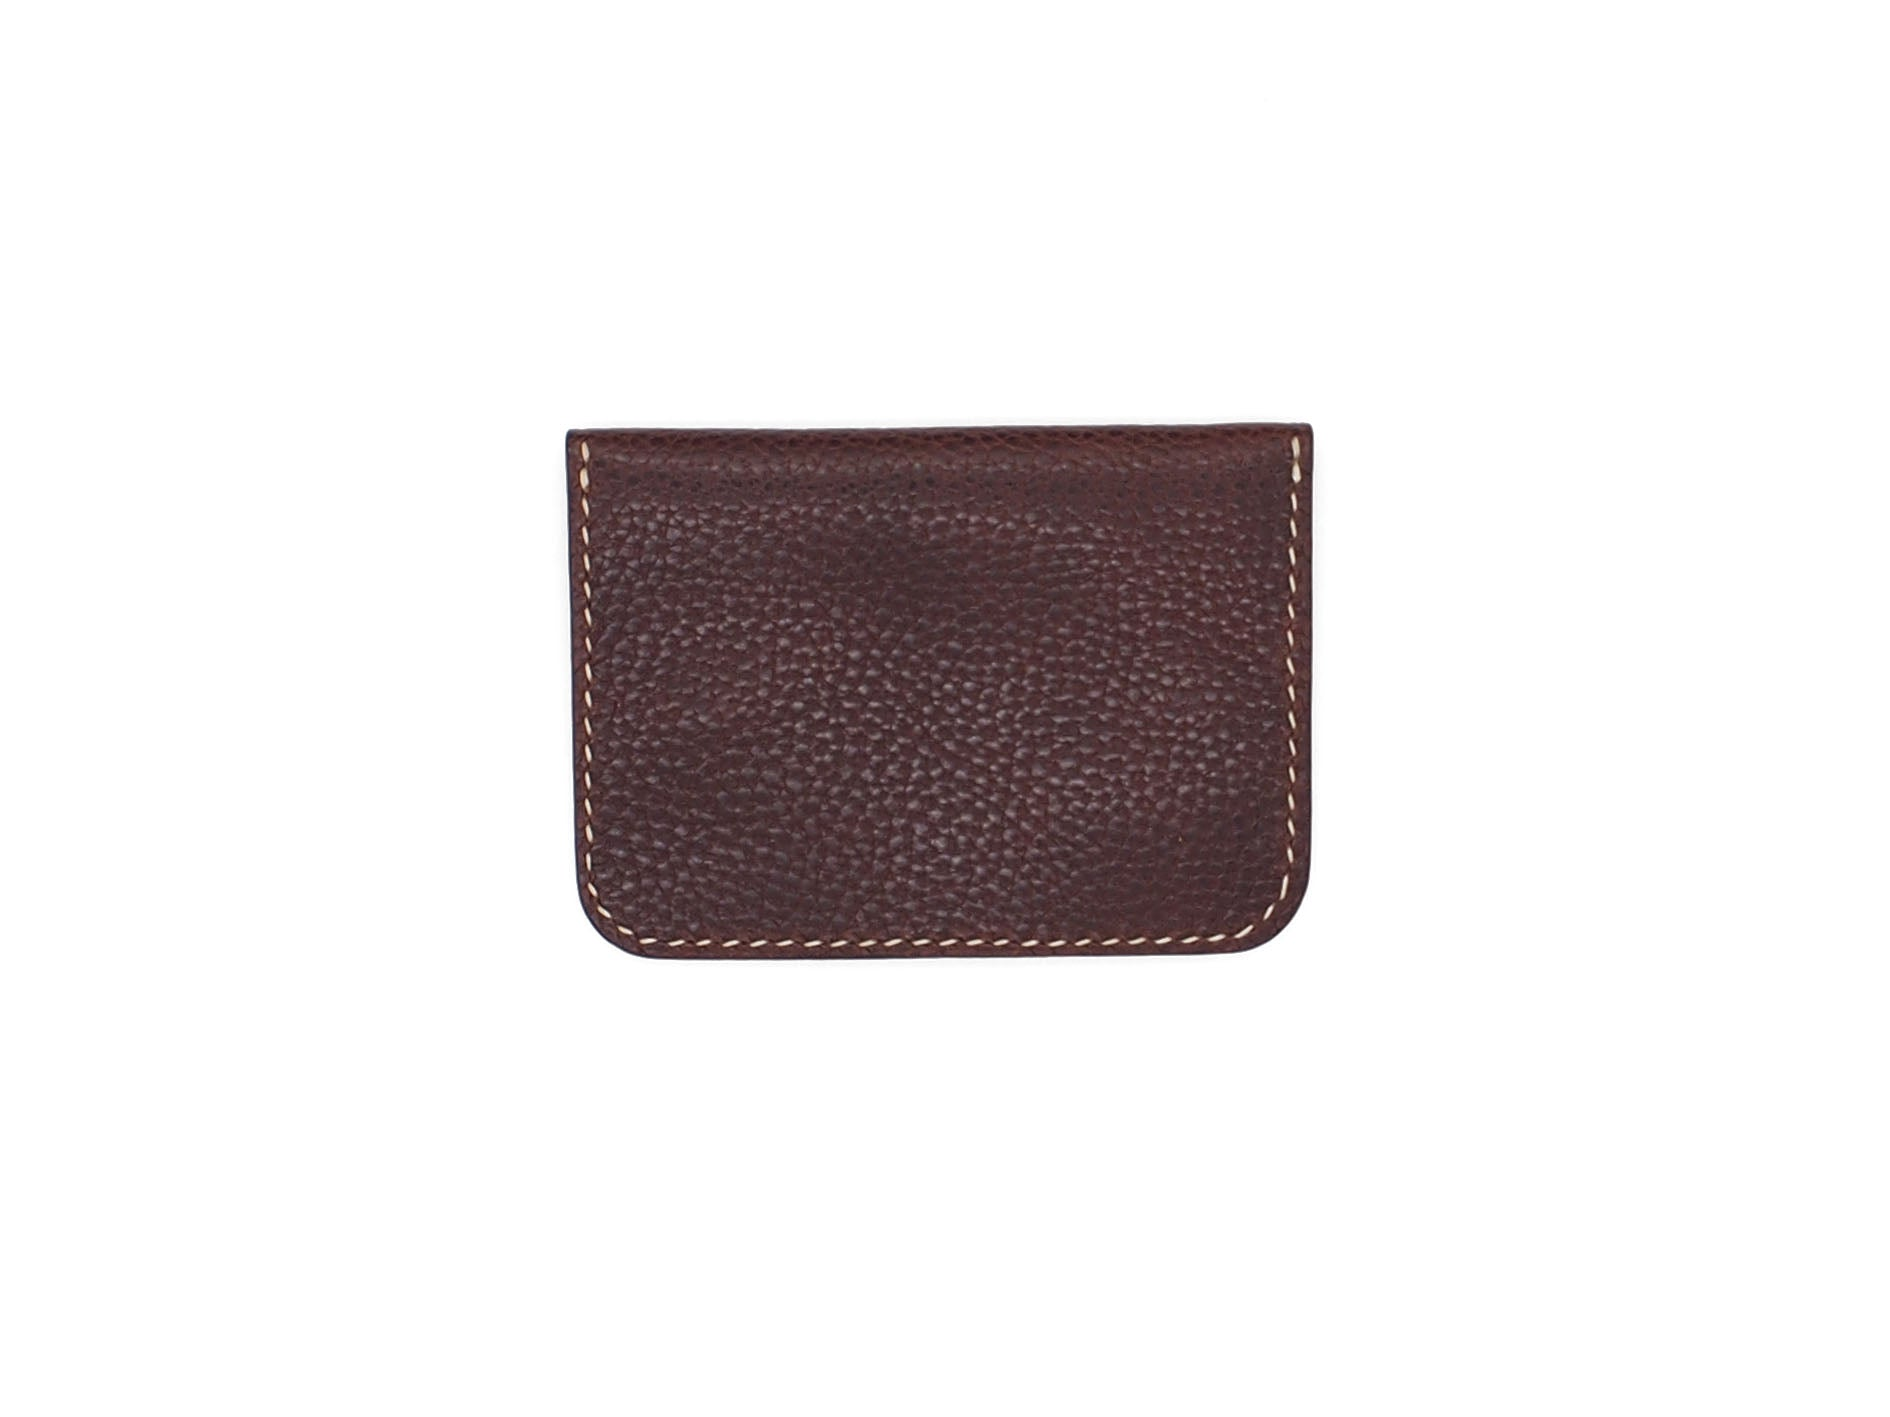 Utility Pocket - Snap Pouch Wallet In Pebbled Burgundy